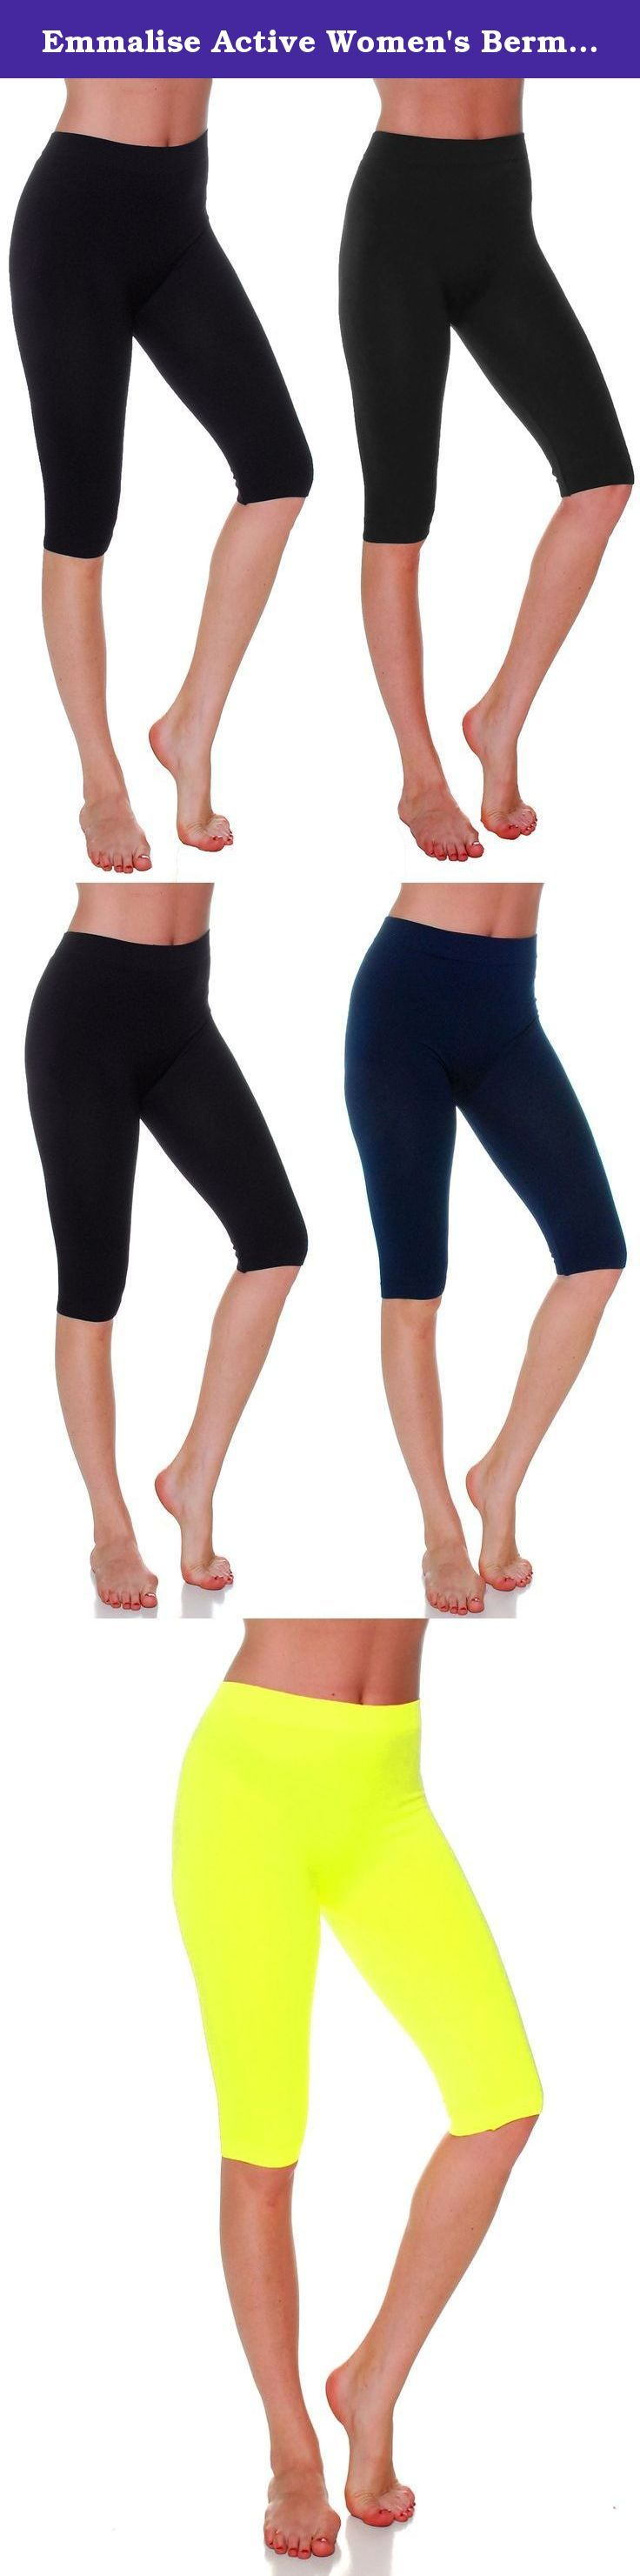 Emmalise Active Women's Bermuda Capri 17 in Knee Length Seamless Legging. Great basic seamless capri bermuda pants leggings Perfect layering shorts. Excellent for exercising, working out, yoga, running, jogging and any activities. Comfortable featherweight elastic material. Smooth and soft. Emmalise is a progressive active basic apparel line designed in Los Angeles, California. Our focus is to create high quality, comfortable everyday clothing for women, men, children, and infants. Our...